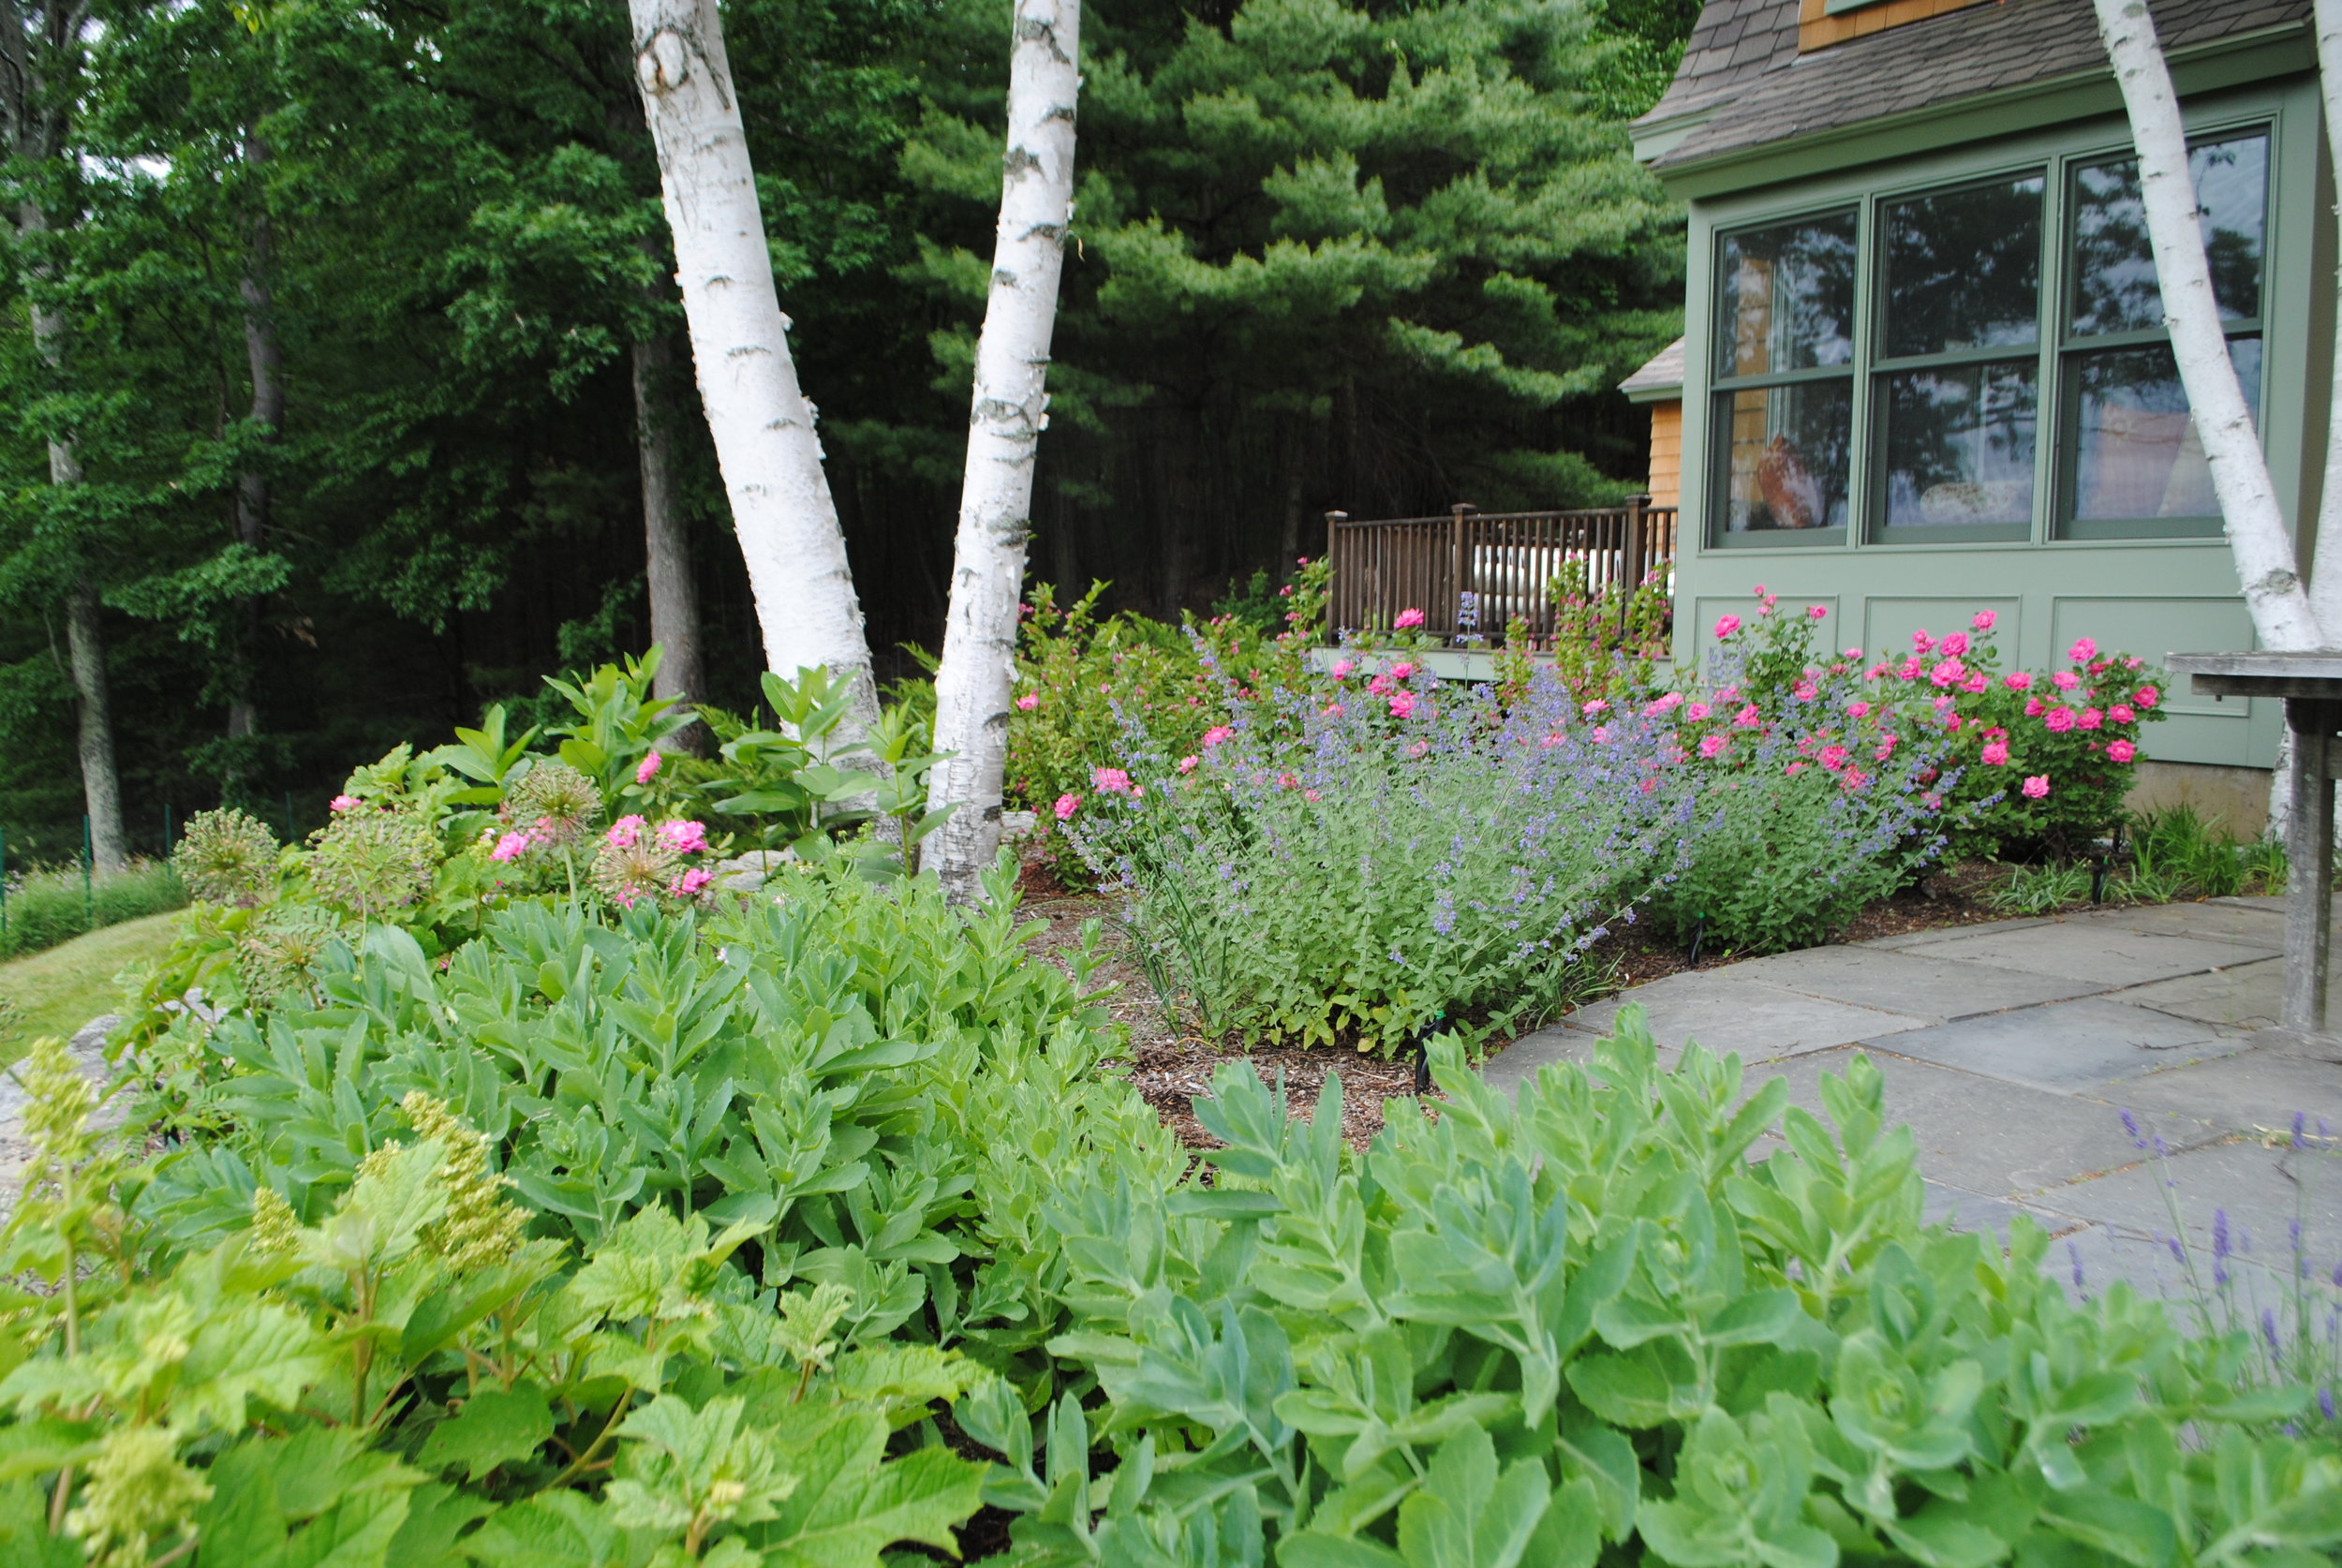 The bluestone is reset in the patio and weeds replaced with hardy shrubs such as Oakleaf Hydrangea and perennials such as Autumn Sedum and Catmint.